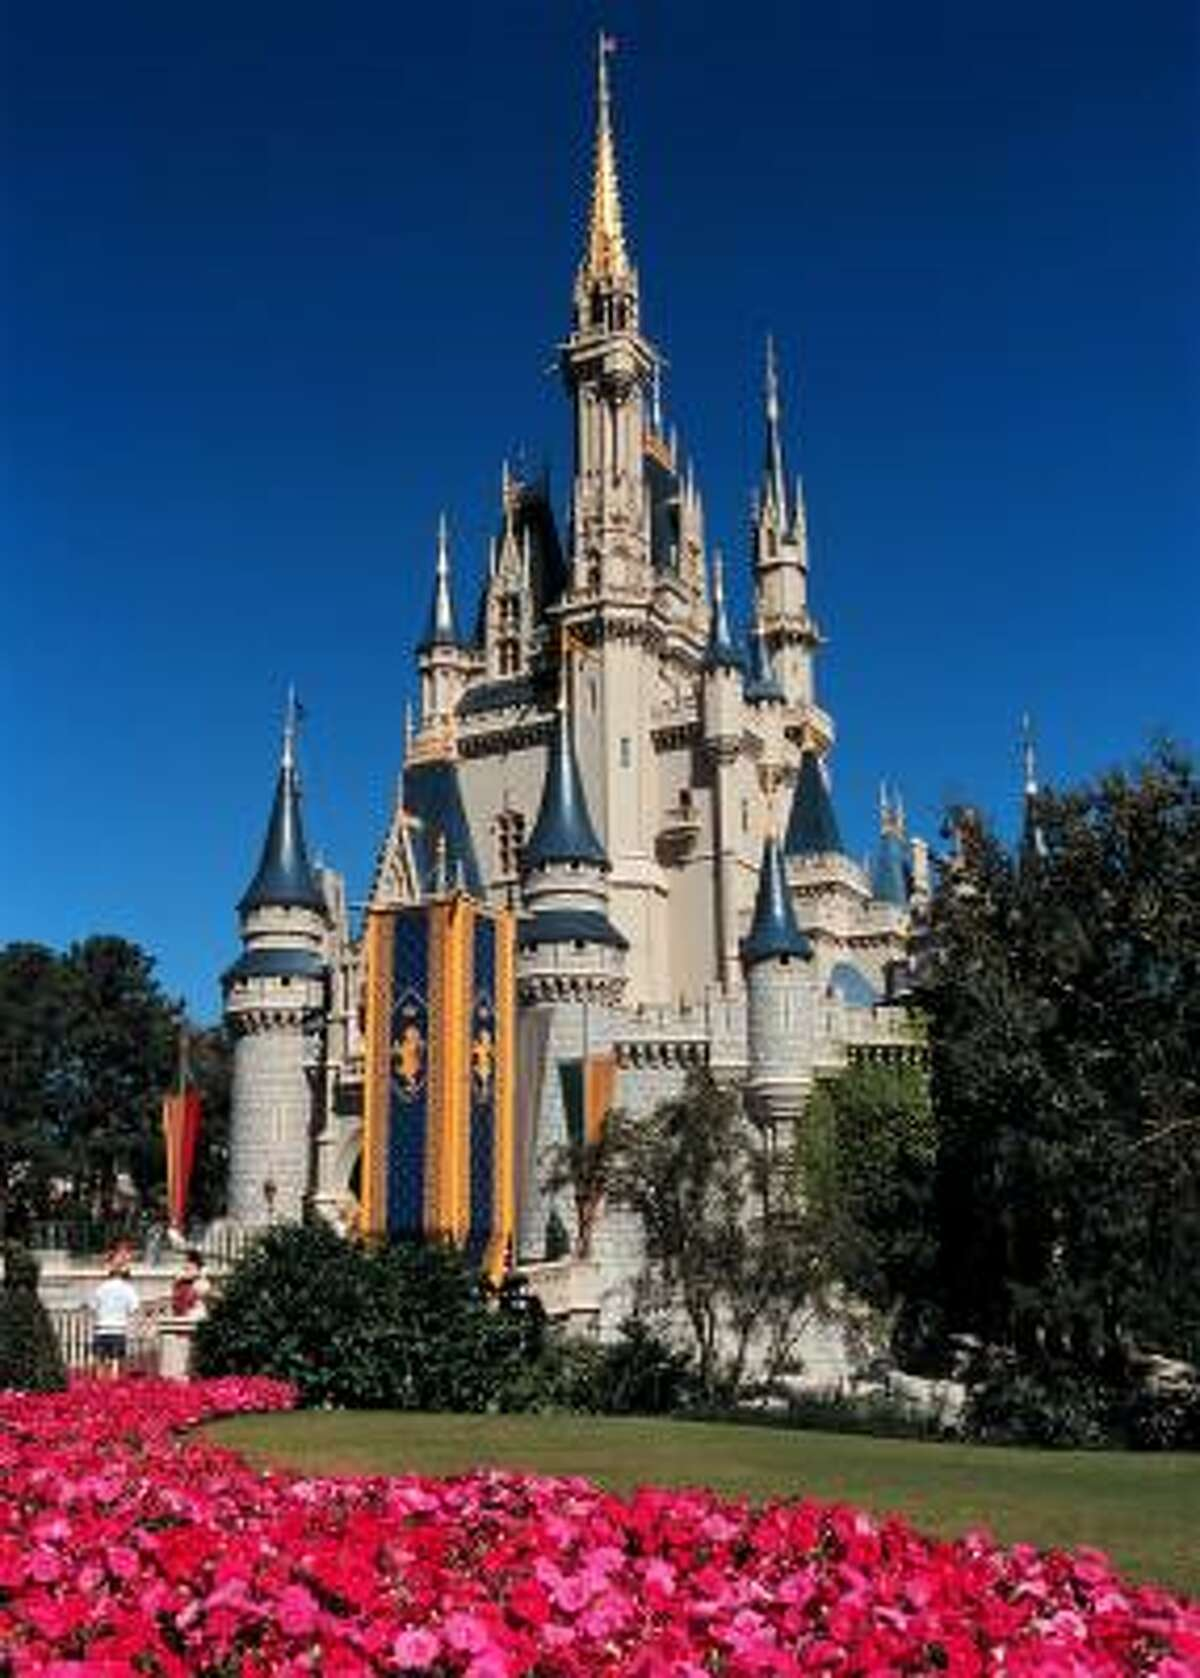 Cinderella's Castle towers above the Magic Kingdom. The landmark castle is an entryway to Fantasyland.